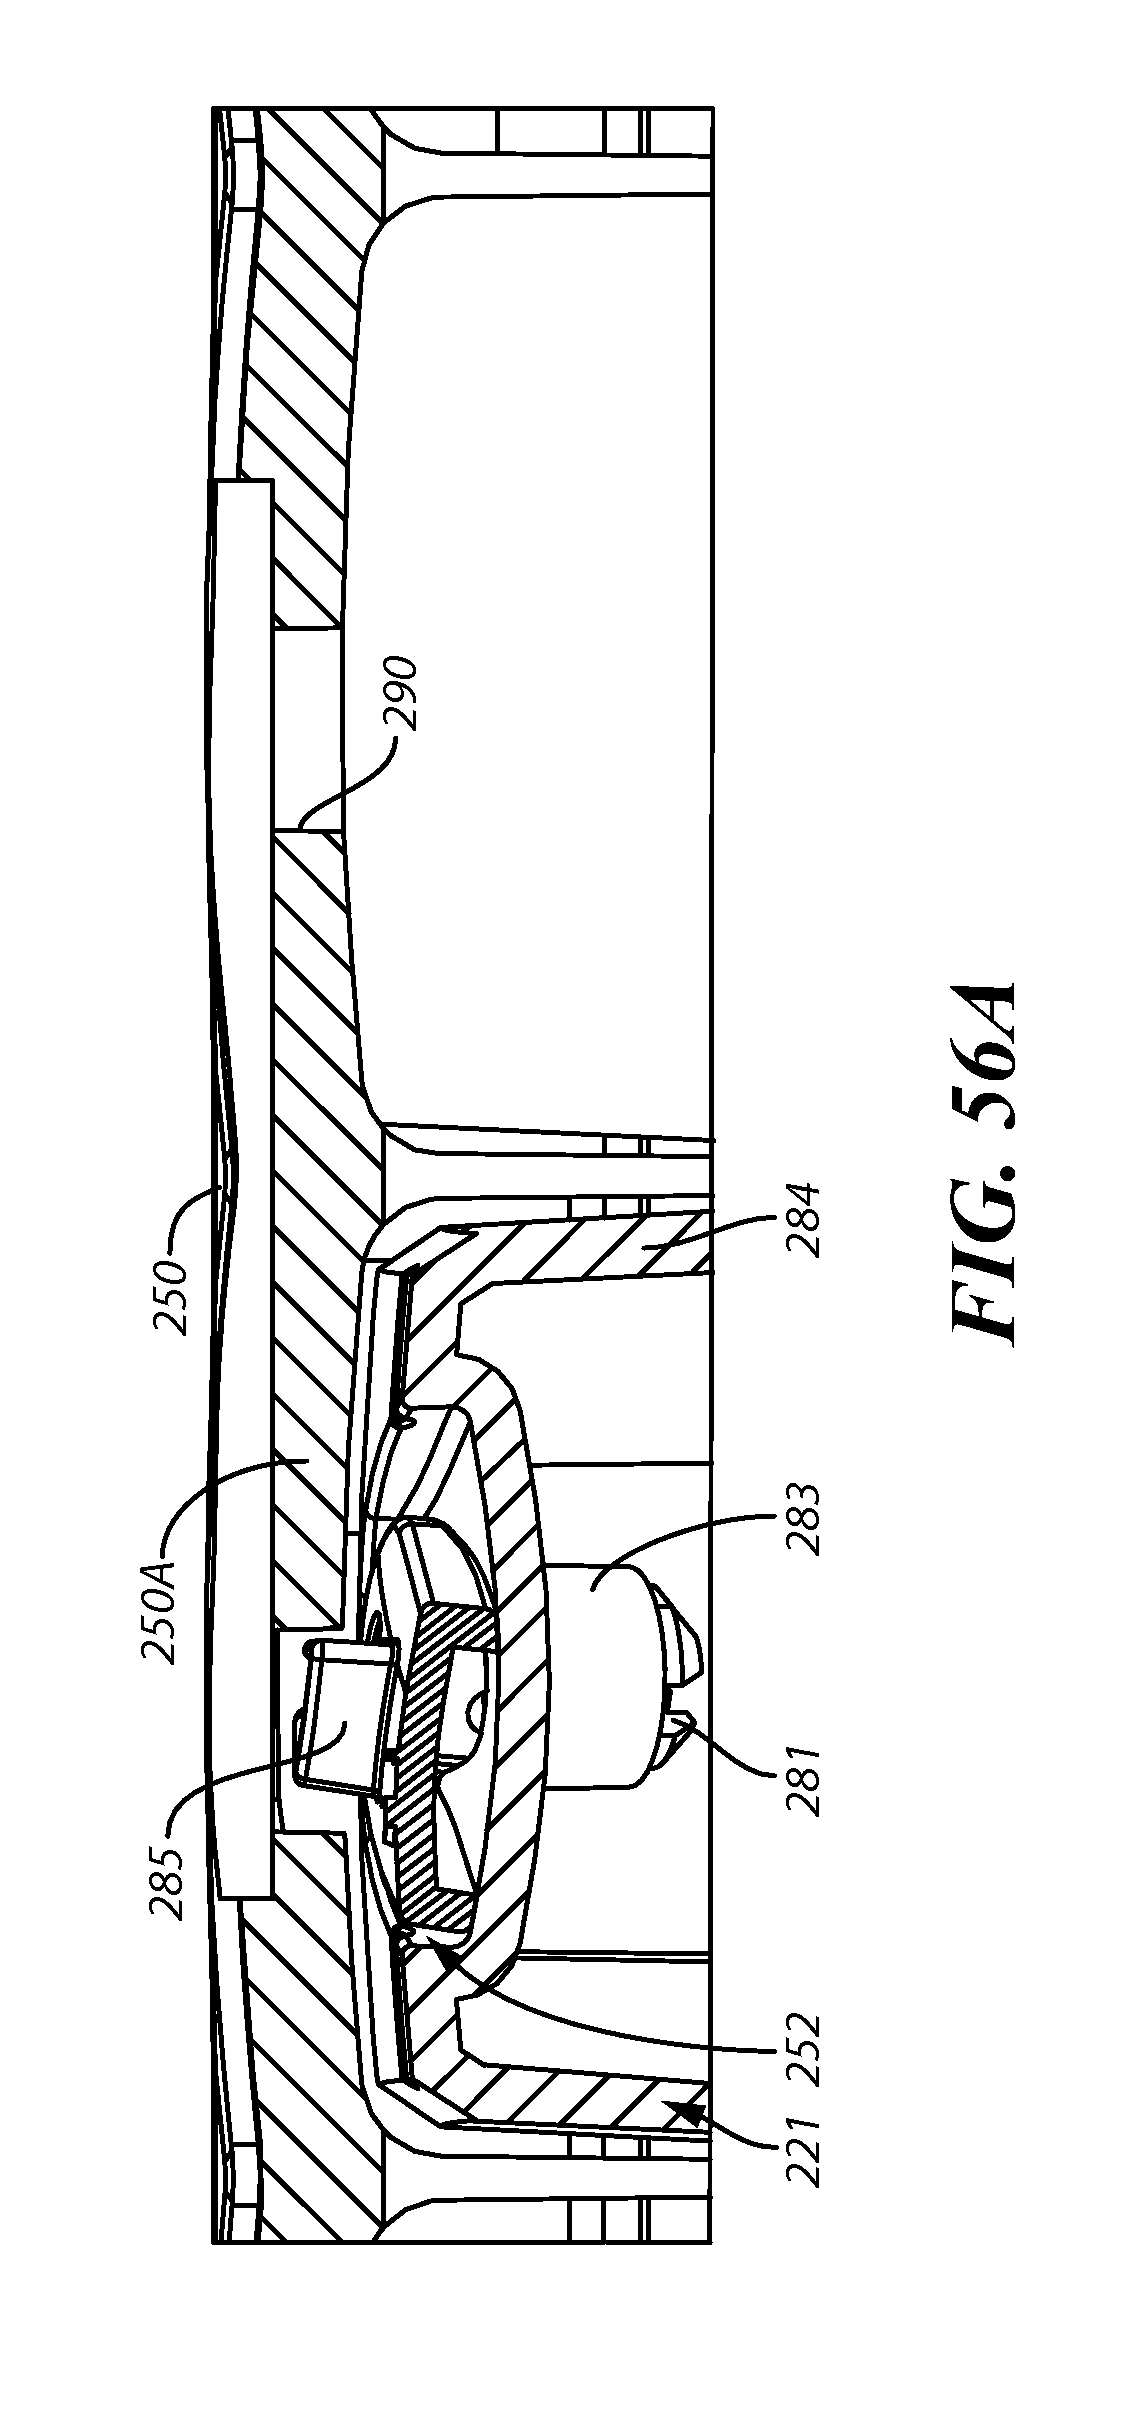 US8265797 in addition US8244404 together with Irrigation System Diagrams also Viewhtml besides Page 5. on irrigation well components